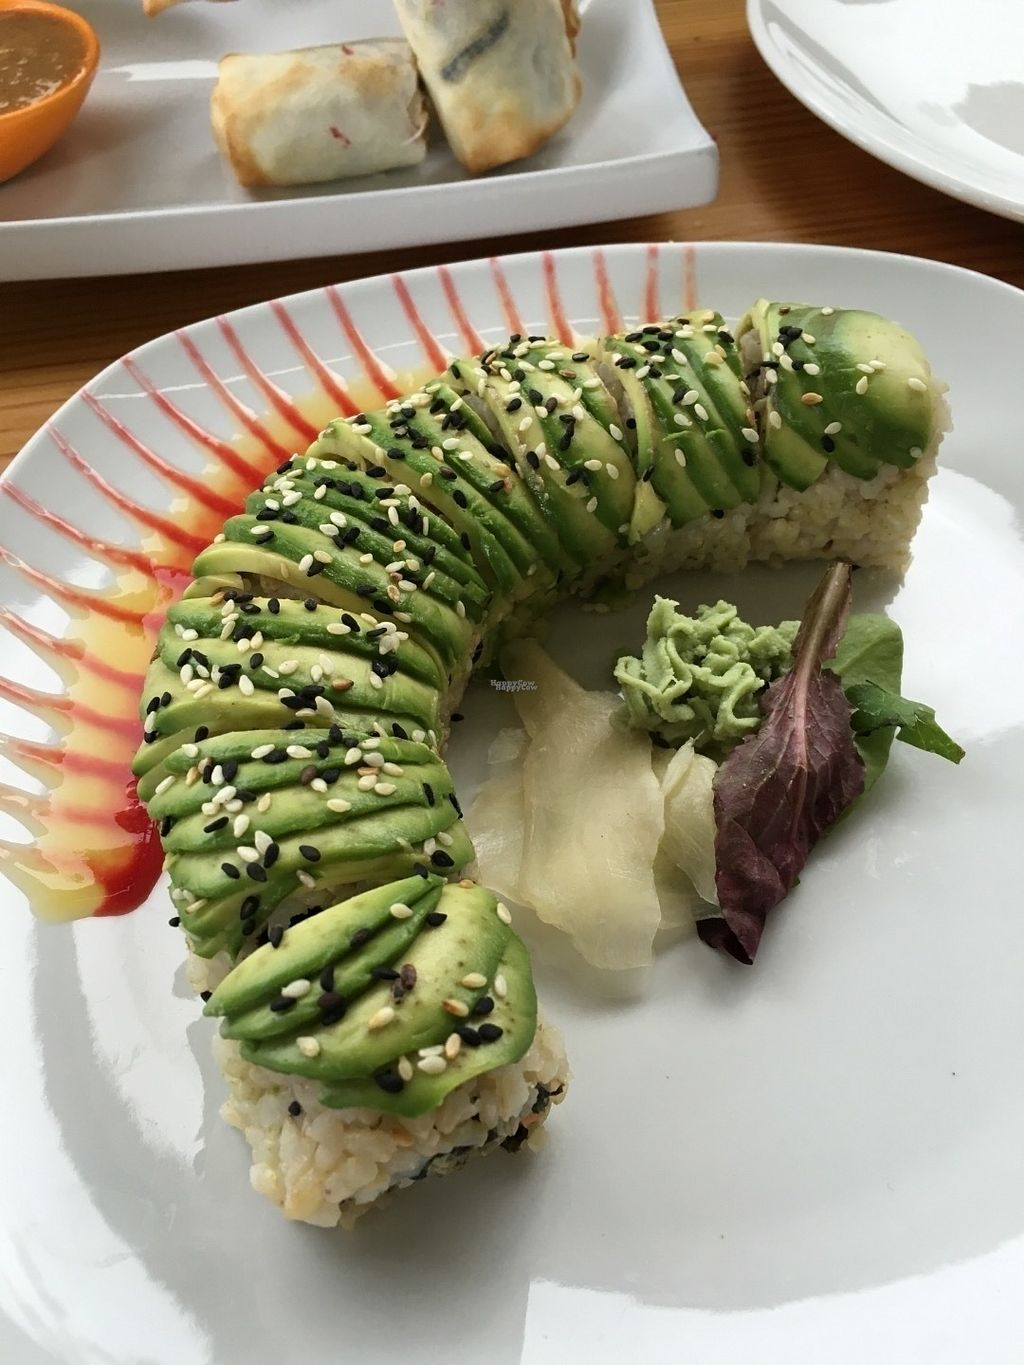 """Photo of Lotus Seed Vegan  by <a href=""""/members/profile/vegan%20frog"""">vegan frog</a> <br/>Dragon rolls <br/> September 3, 2016  - <a href='/contact/abuse/image/50638/173160'>Report</a>"""